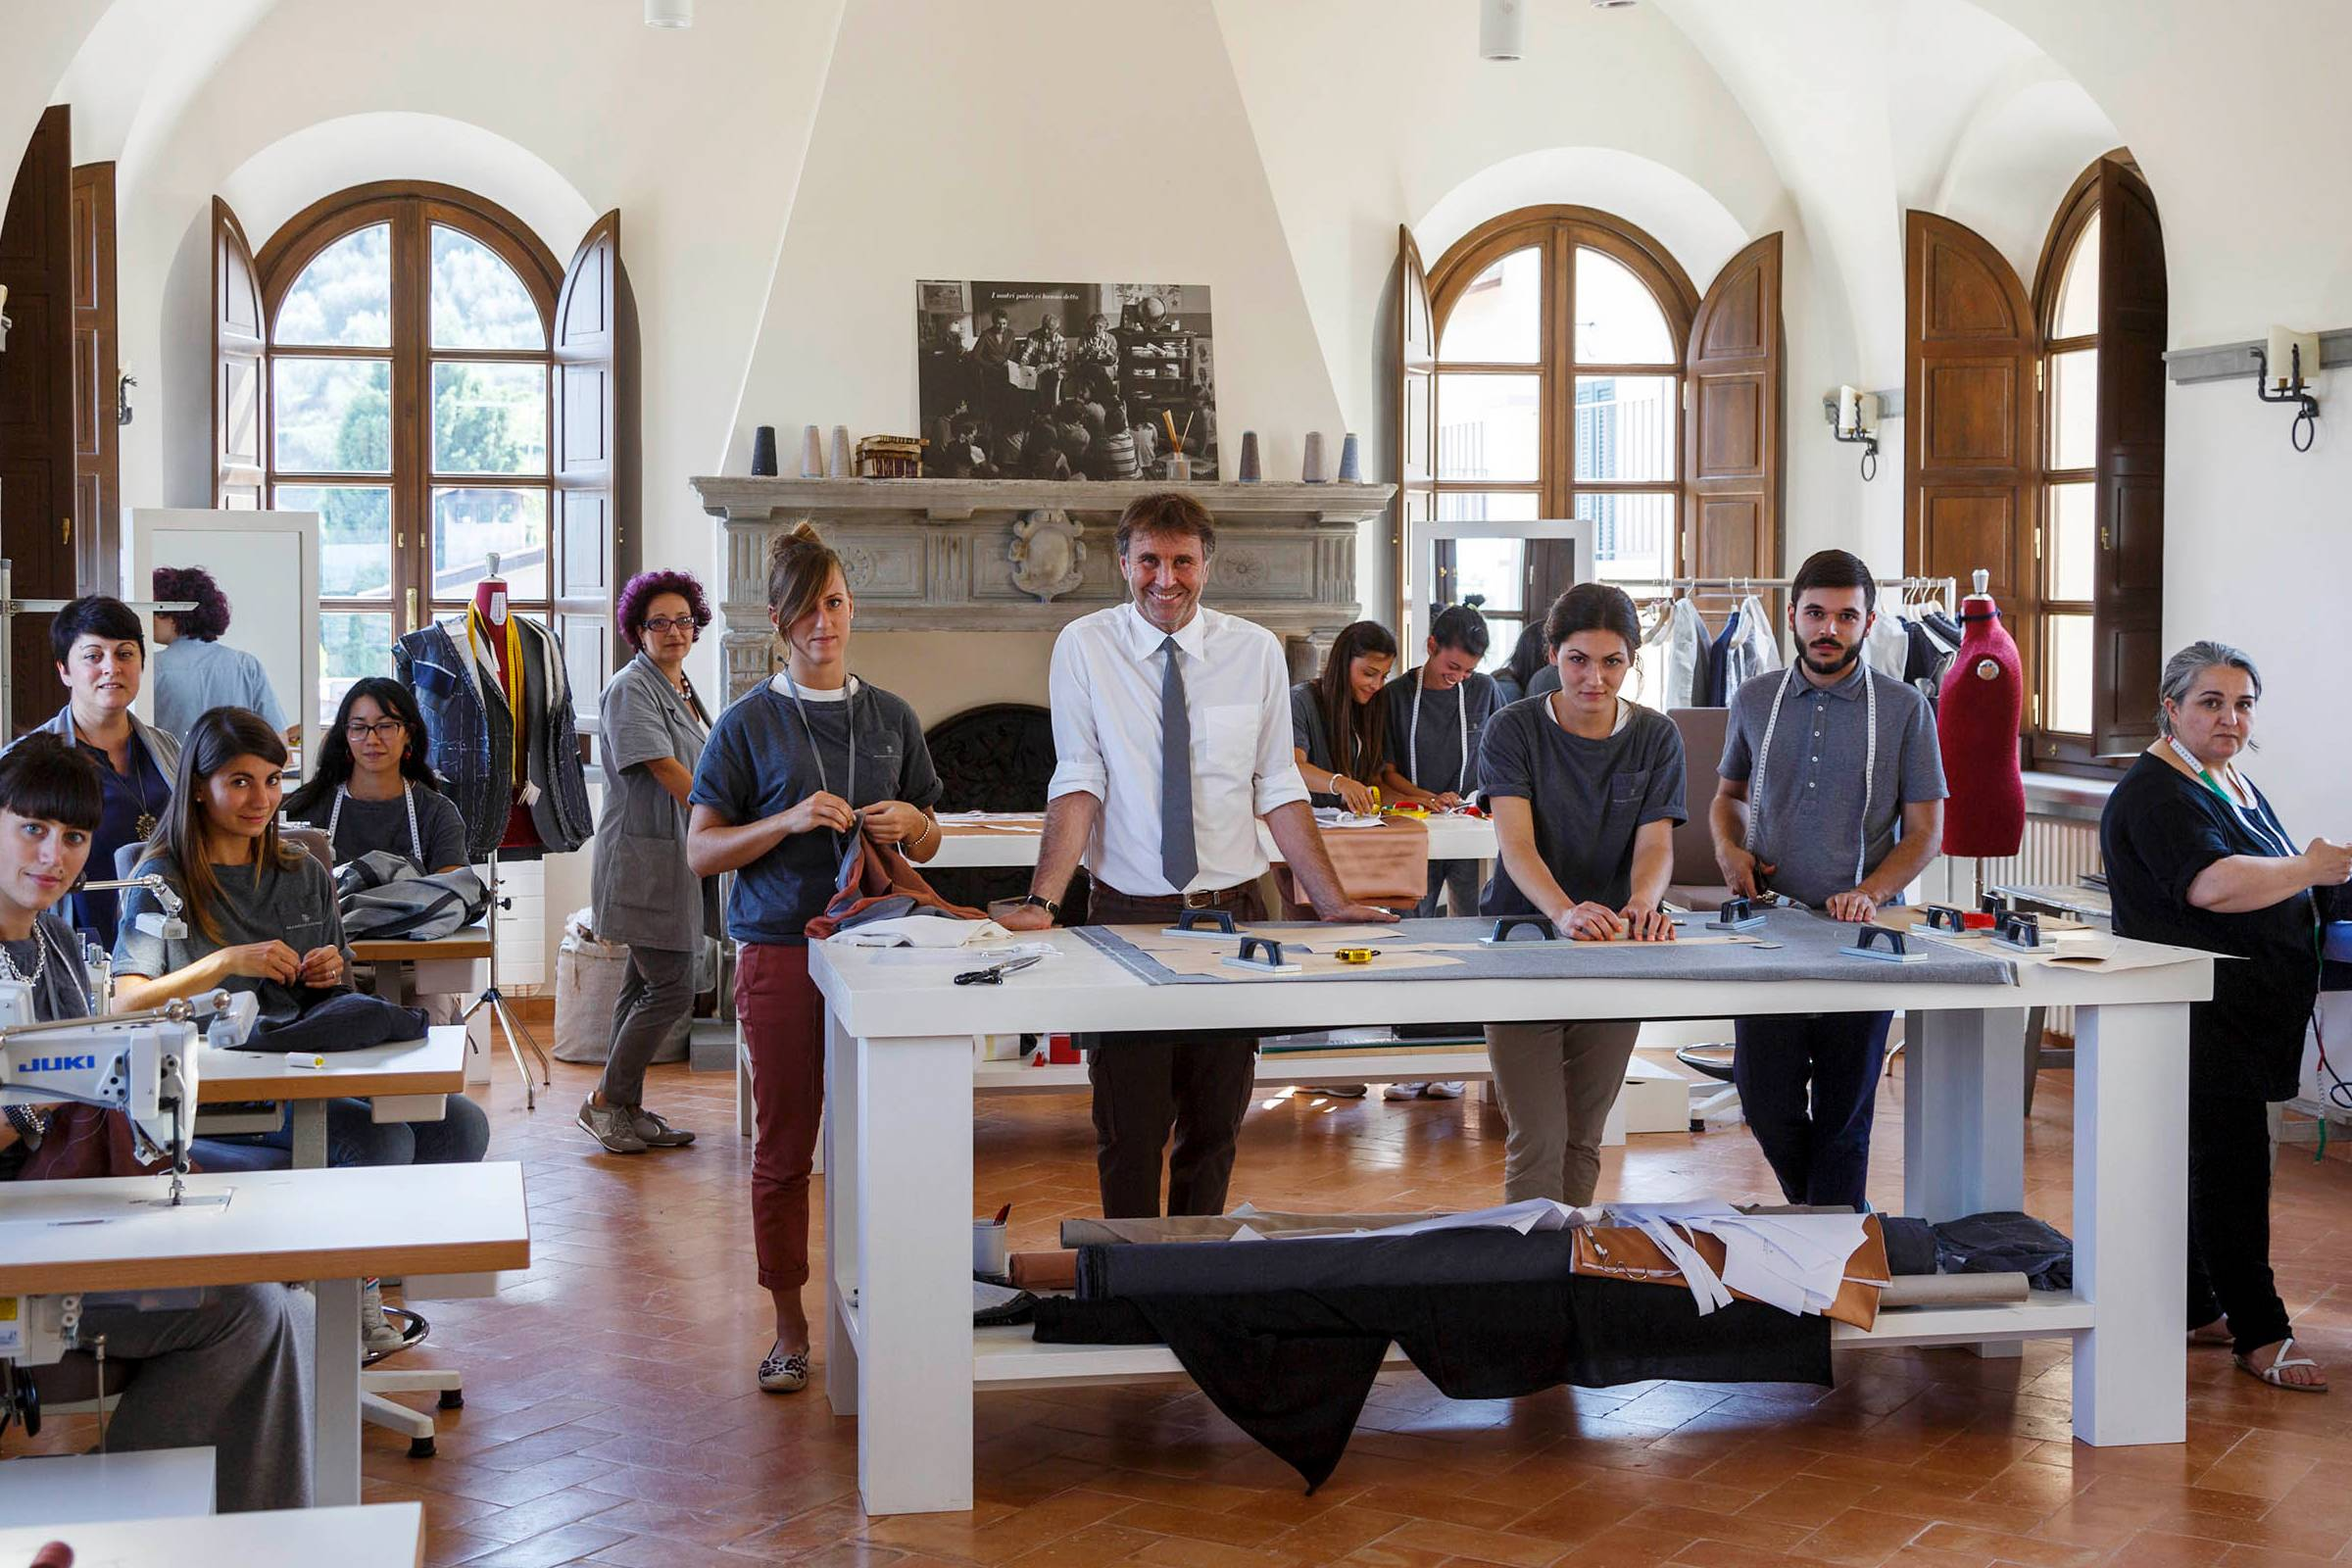 Brunello Cucinelli at The School of Arts and Crafts in Solemeo